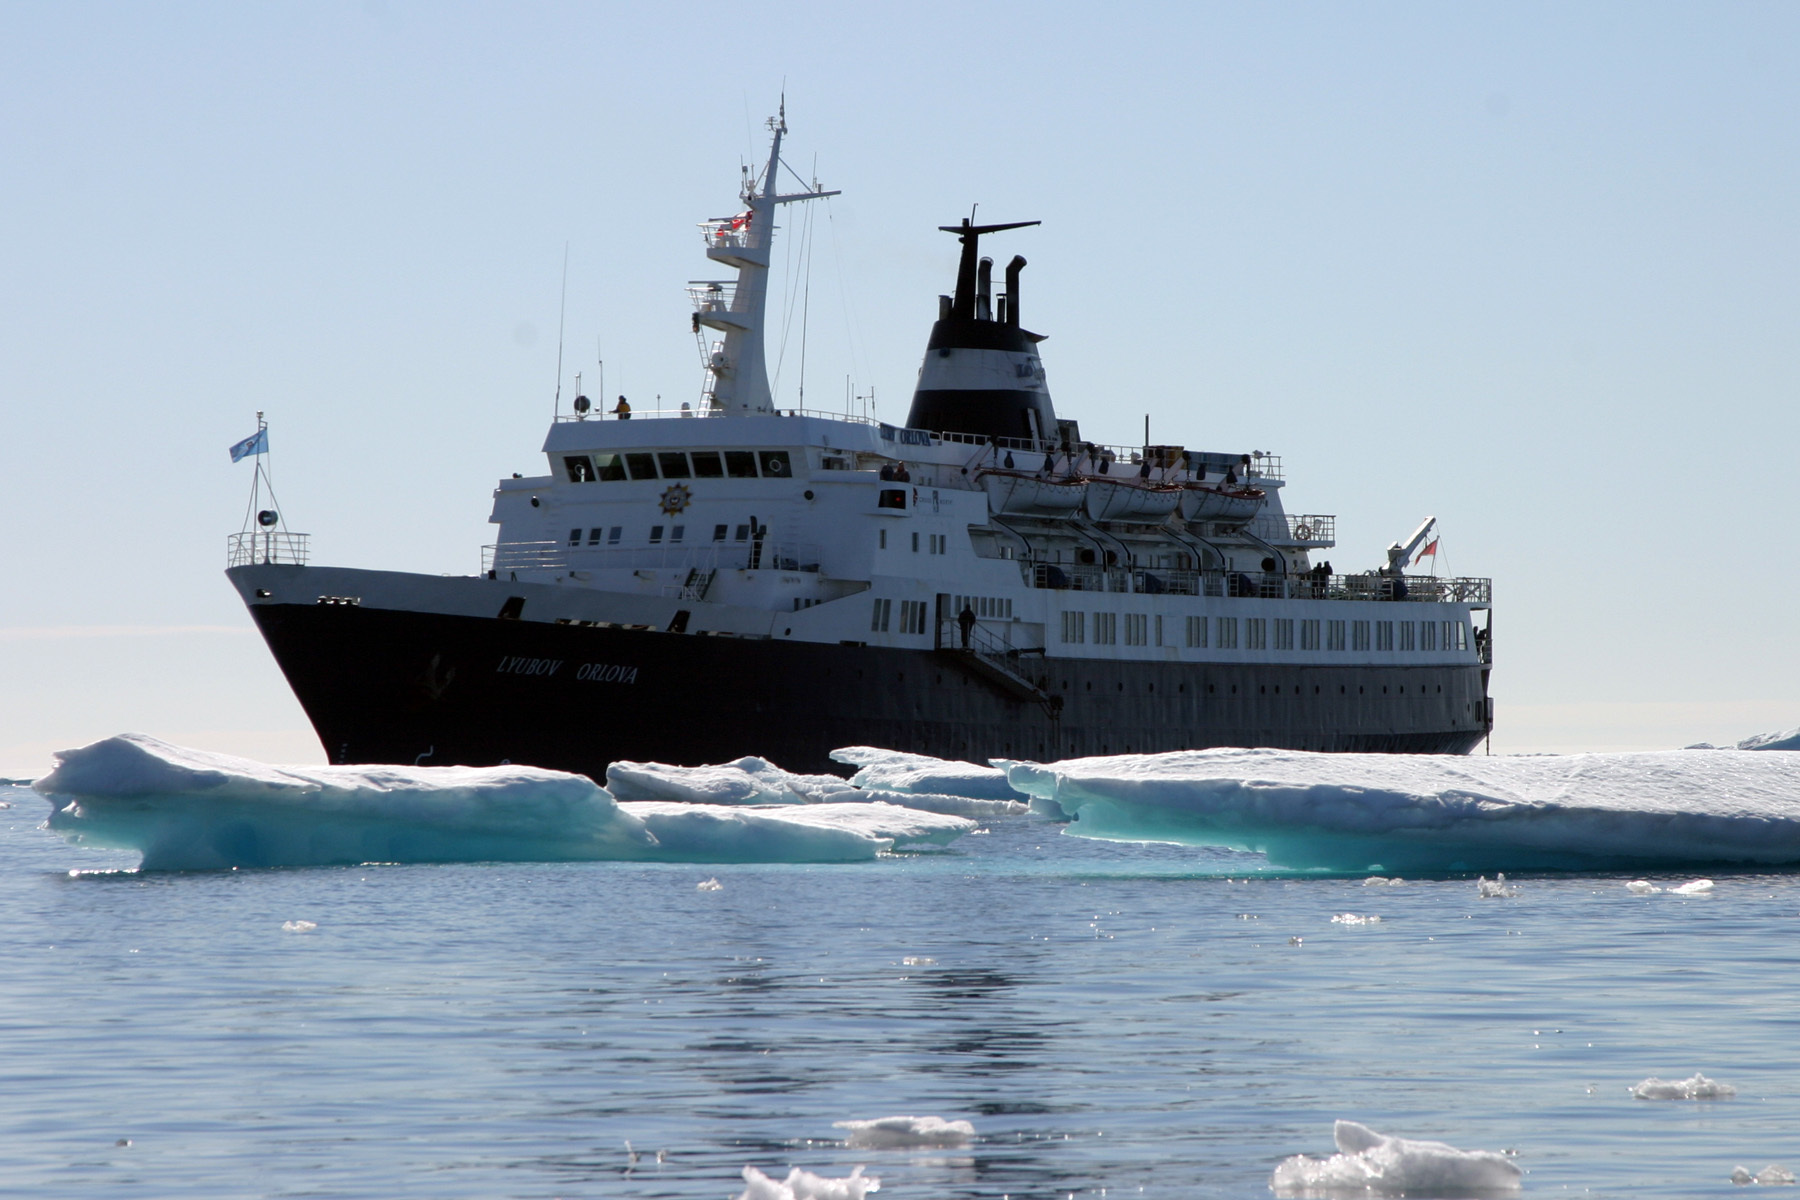 The Lyubov Orlova, photographed in Canada's Arctic during the 2007 summer cruise season. (Rick Derevan photography)